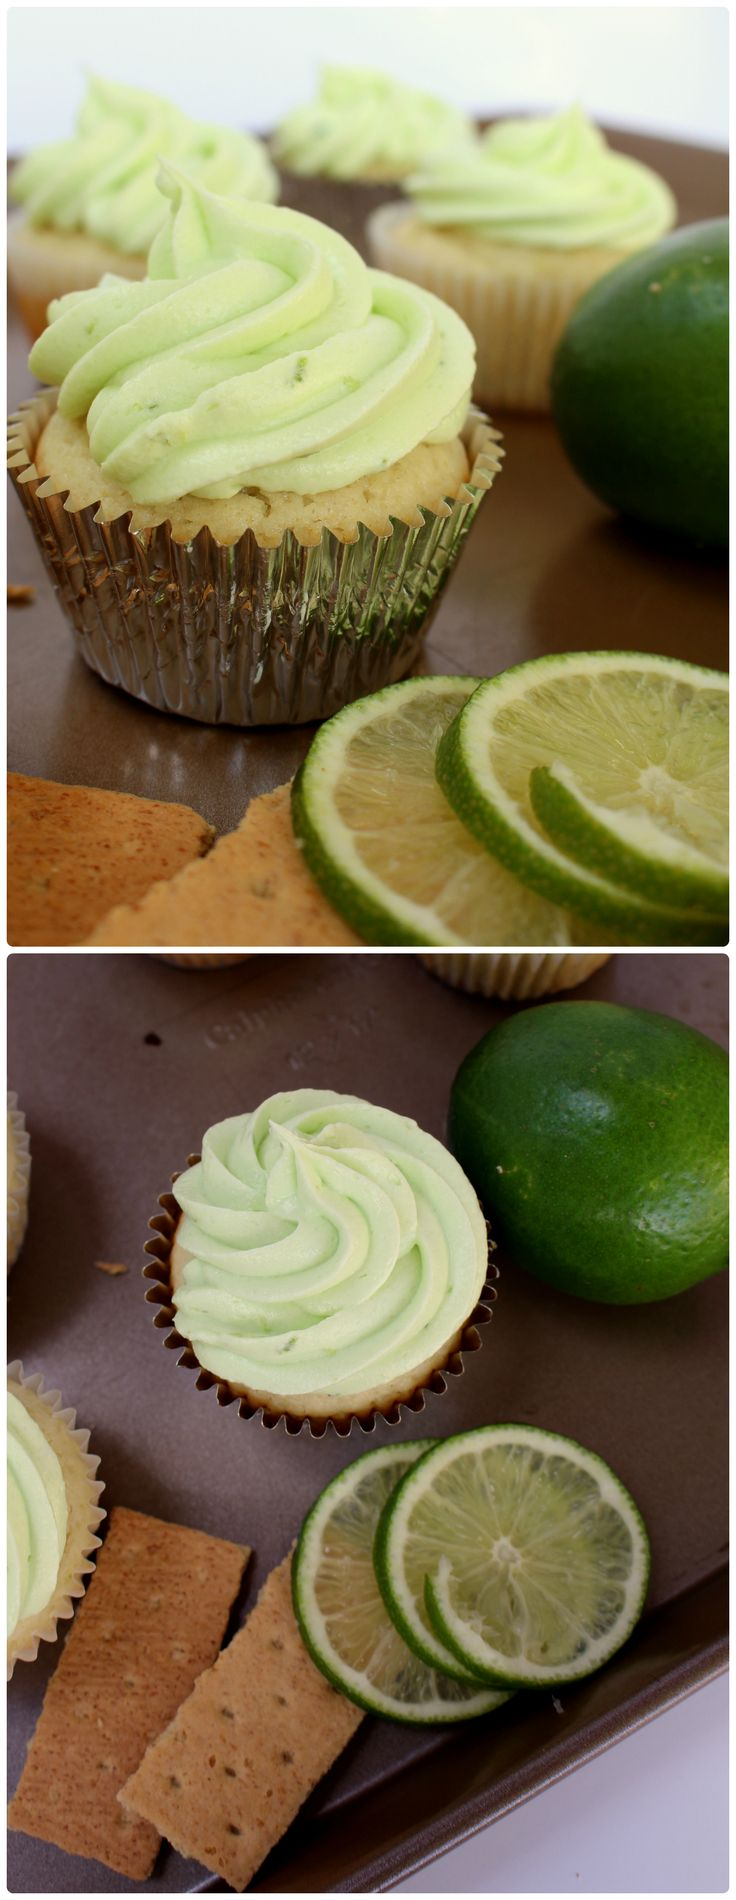 Key lime Pie Cupcakes | www.chocolatewithgrace.com | #cupcake #recipe #keylime